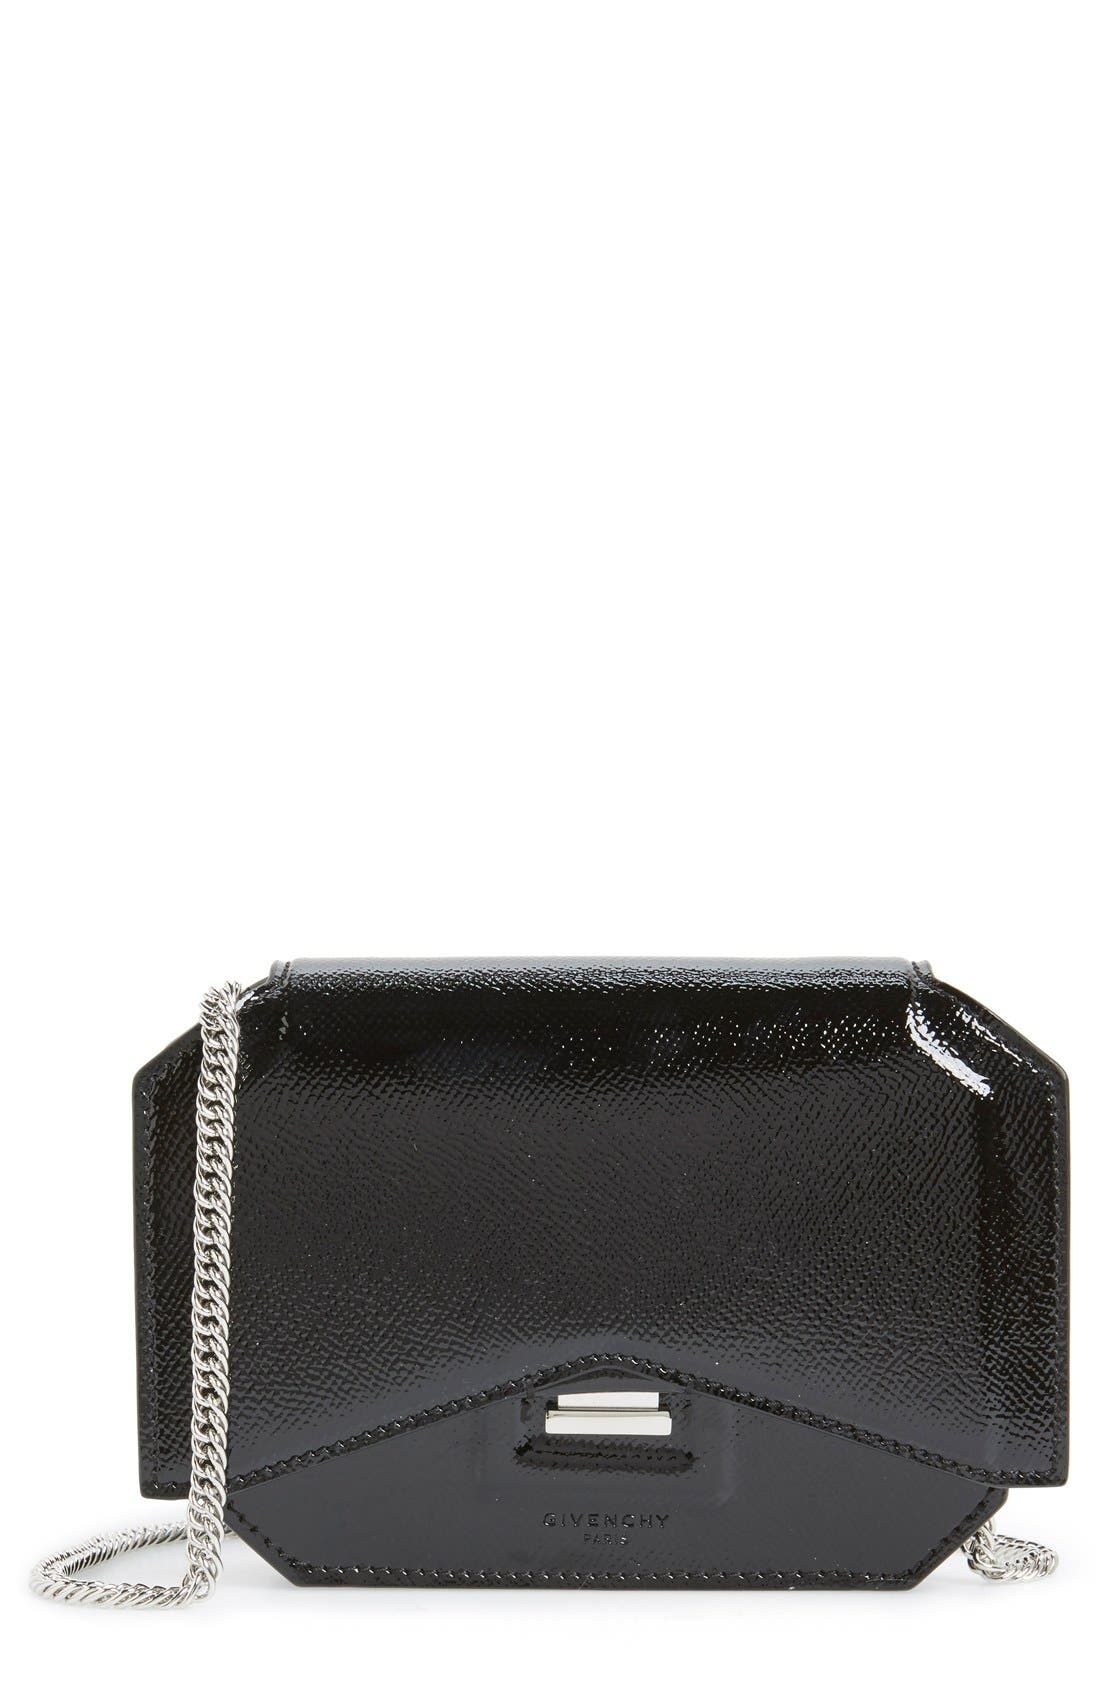 Main Image - Givenchy 'Bow Cut' Patent Leather Wallet on a Chain